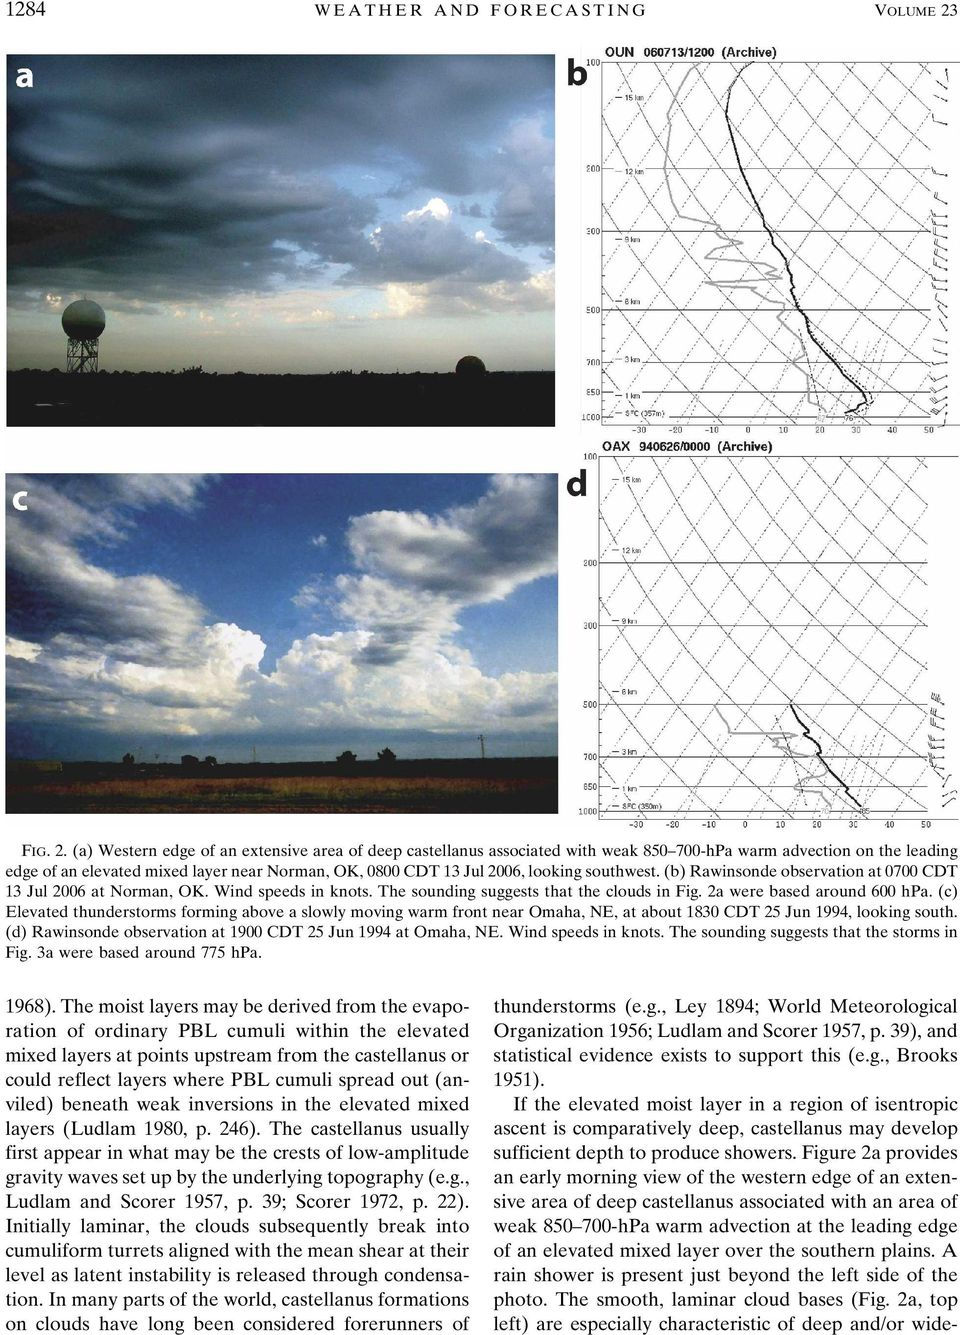 (a) Western edge of an extensive area of deep castellanus associated with weak 850 700-hPa warm advection on the leading edge of an elevated mixed layer near Norman, OK, 0800 CDT 13 Jul 2006, looking